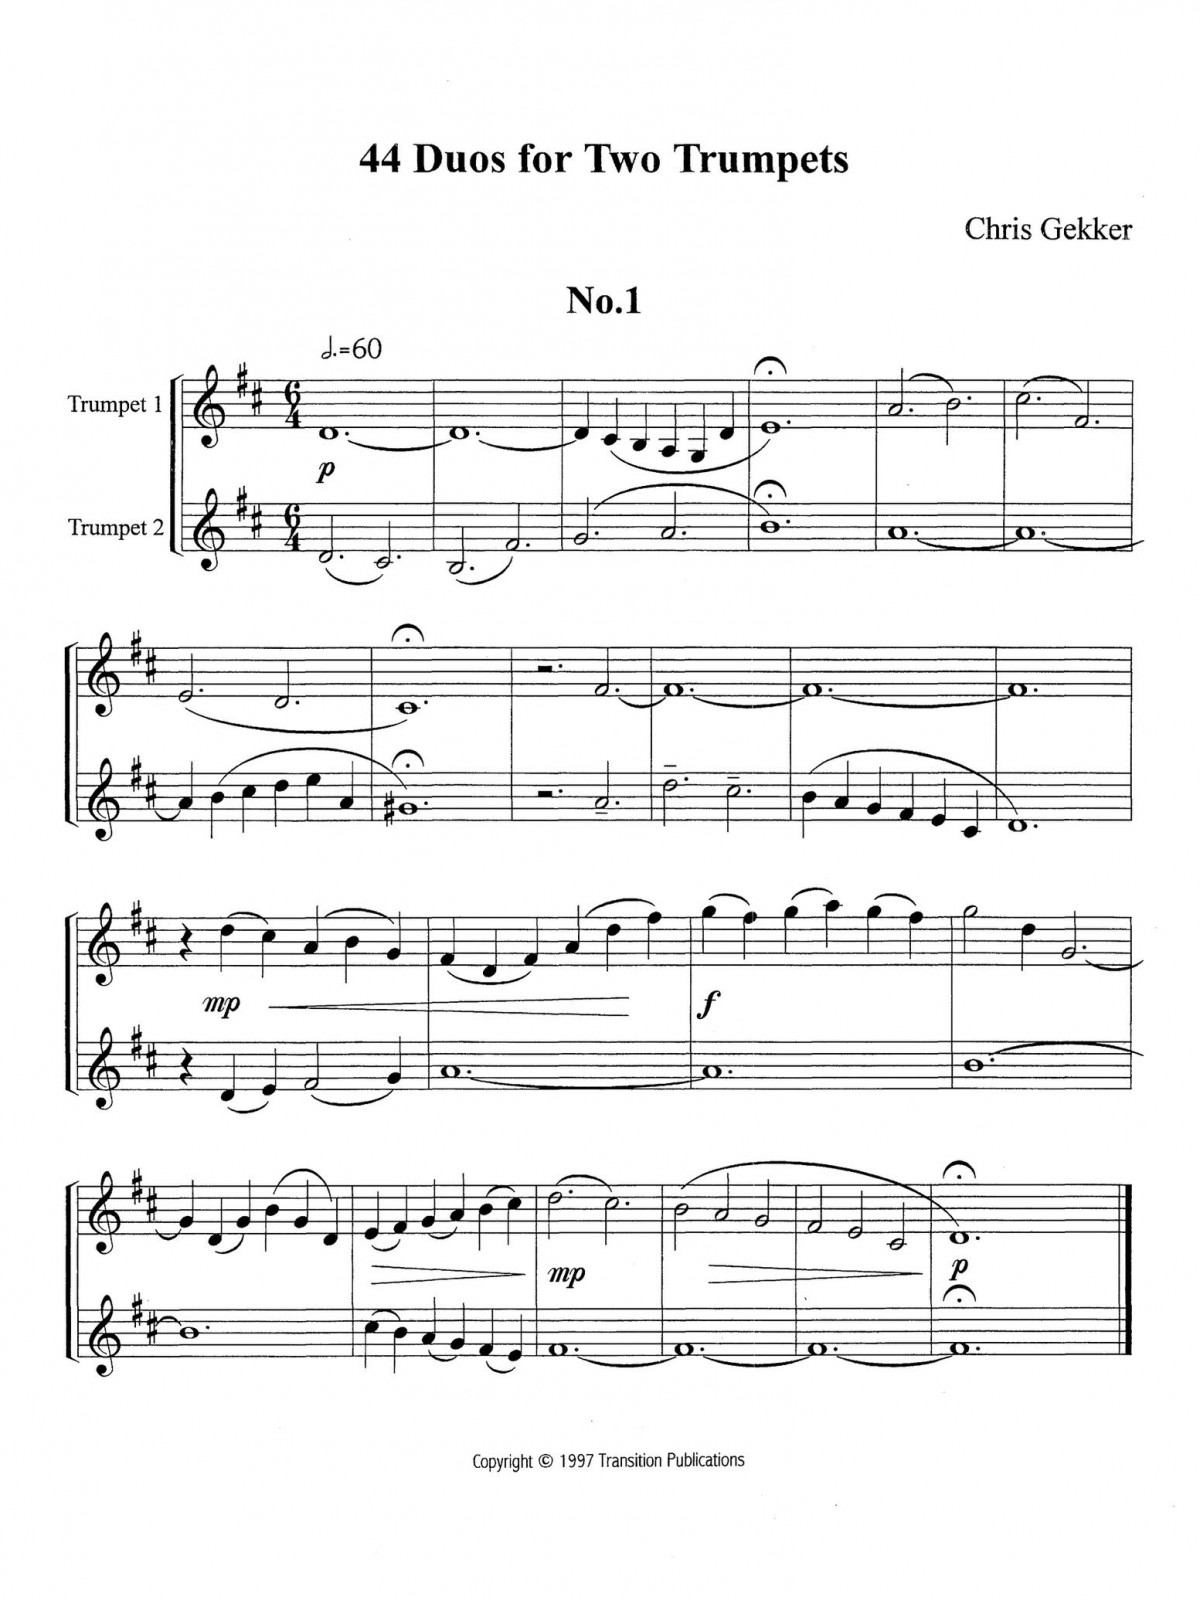 Gekker 44 Duos for Trumpet PDF